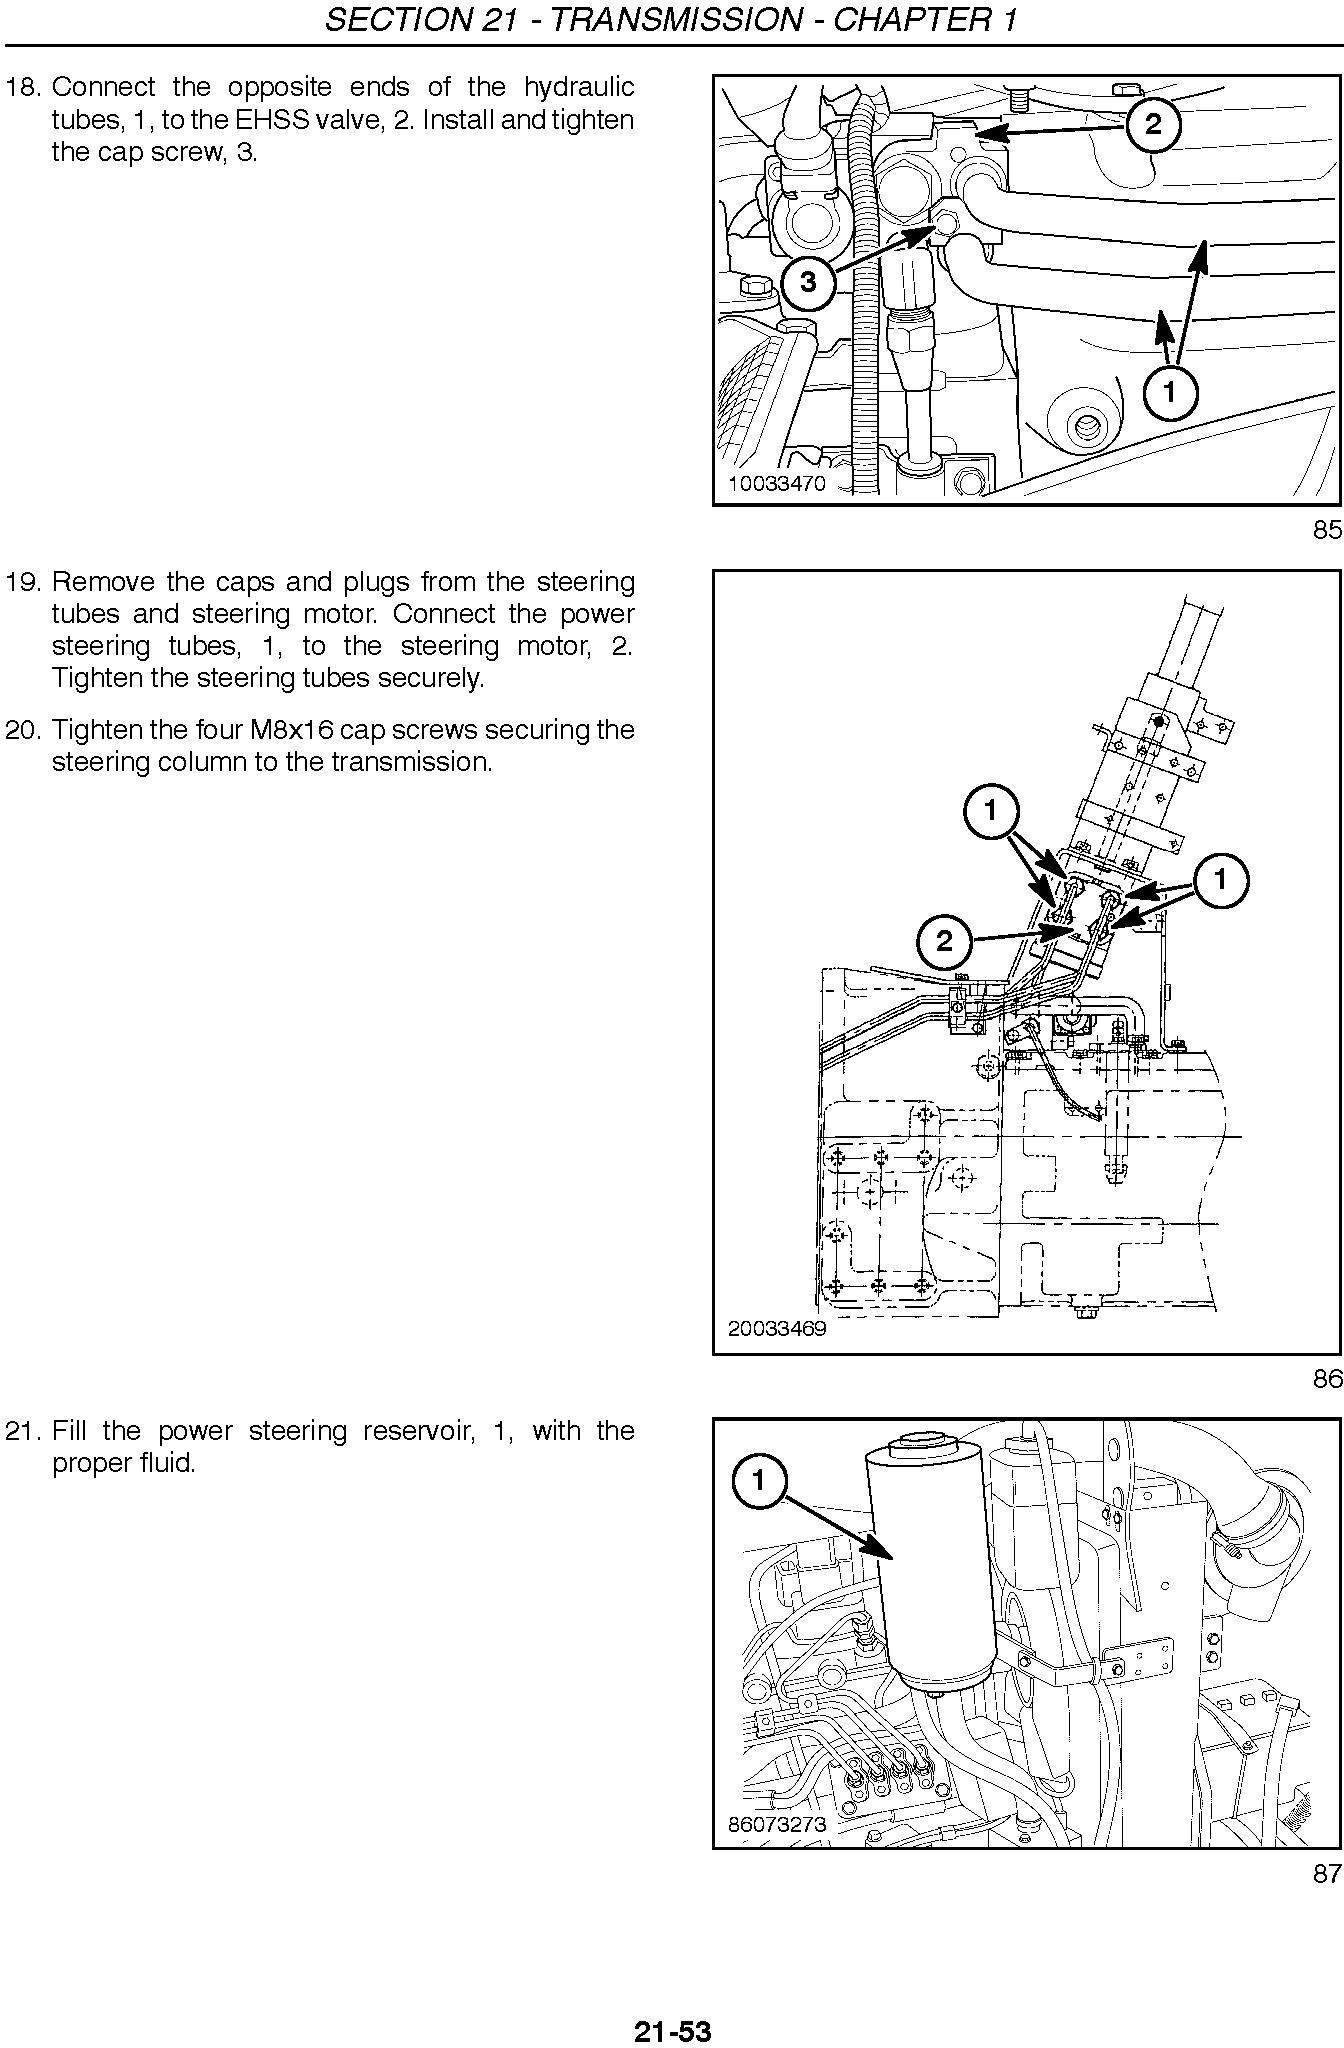 New Holland Boomer 4055, 4060 Tractor Service Manual - 1